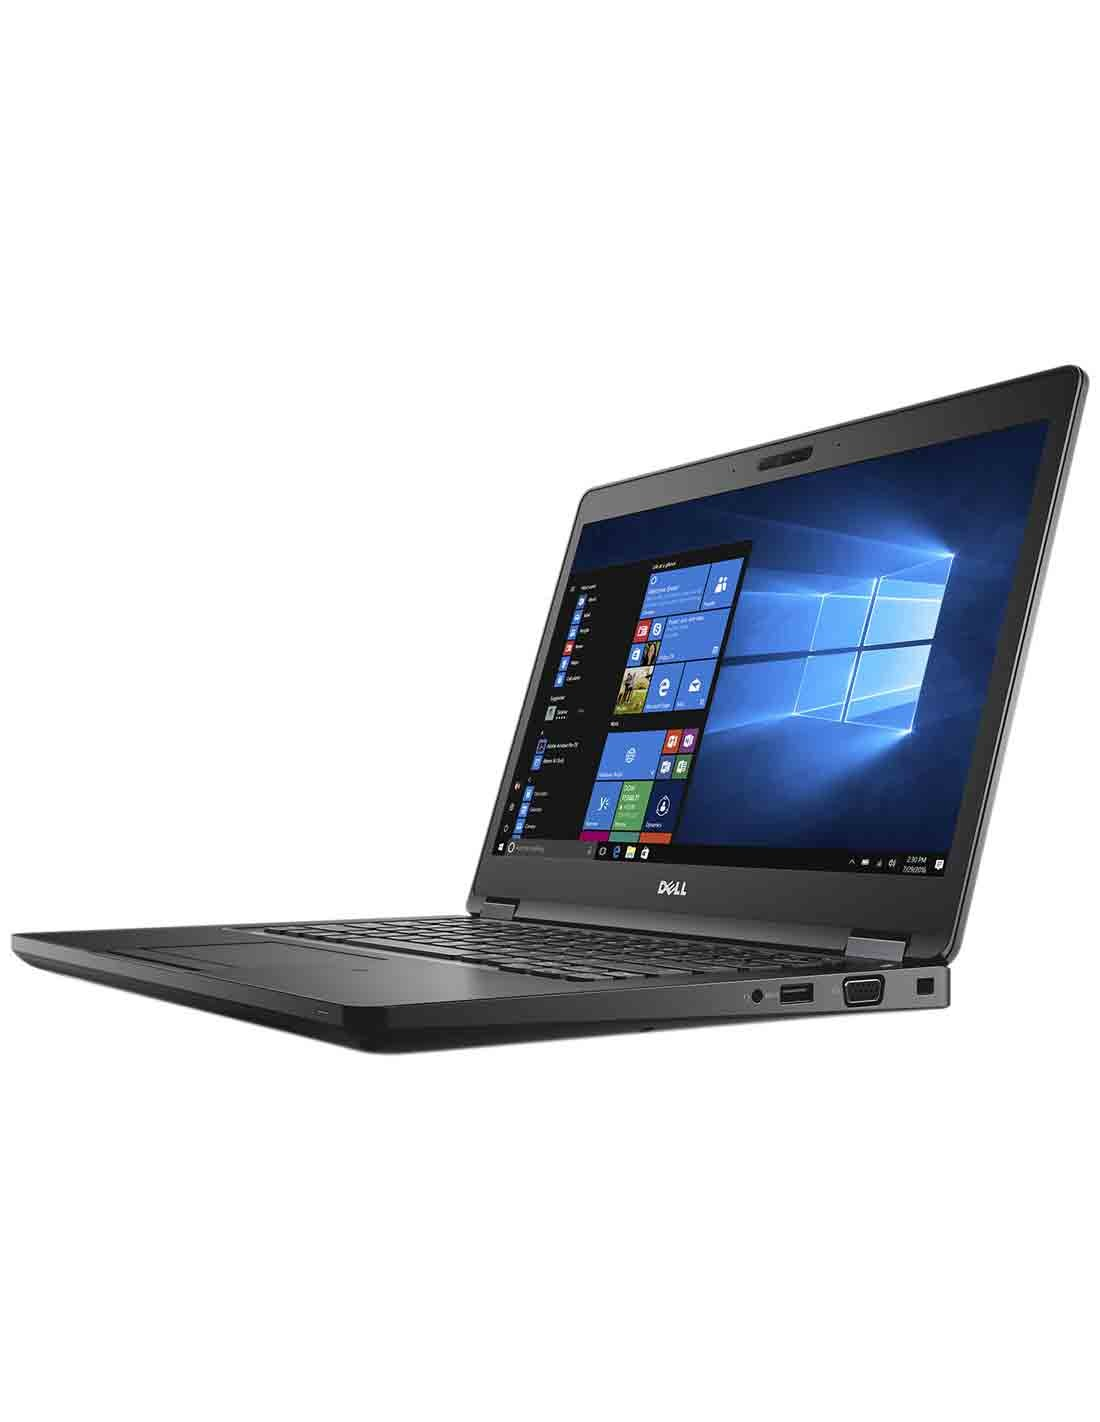 Dell Latitude 5480 Notebook 8GB images and photos in Dubai computer store